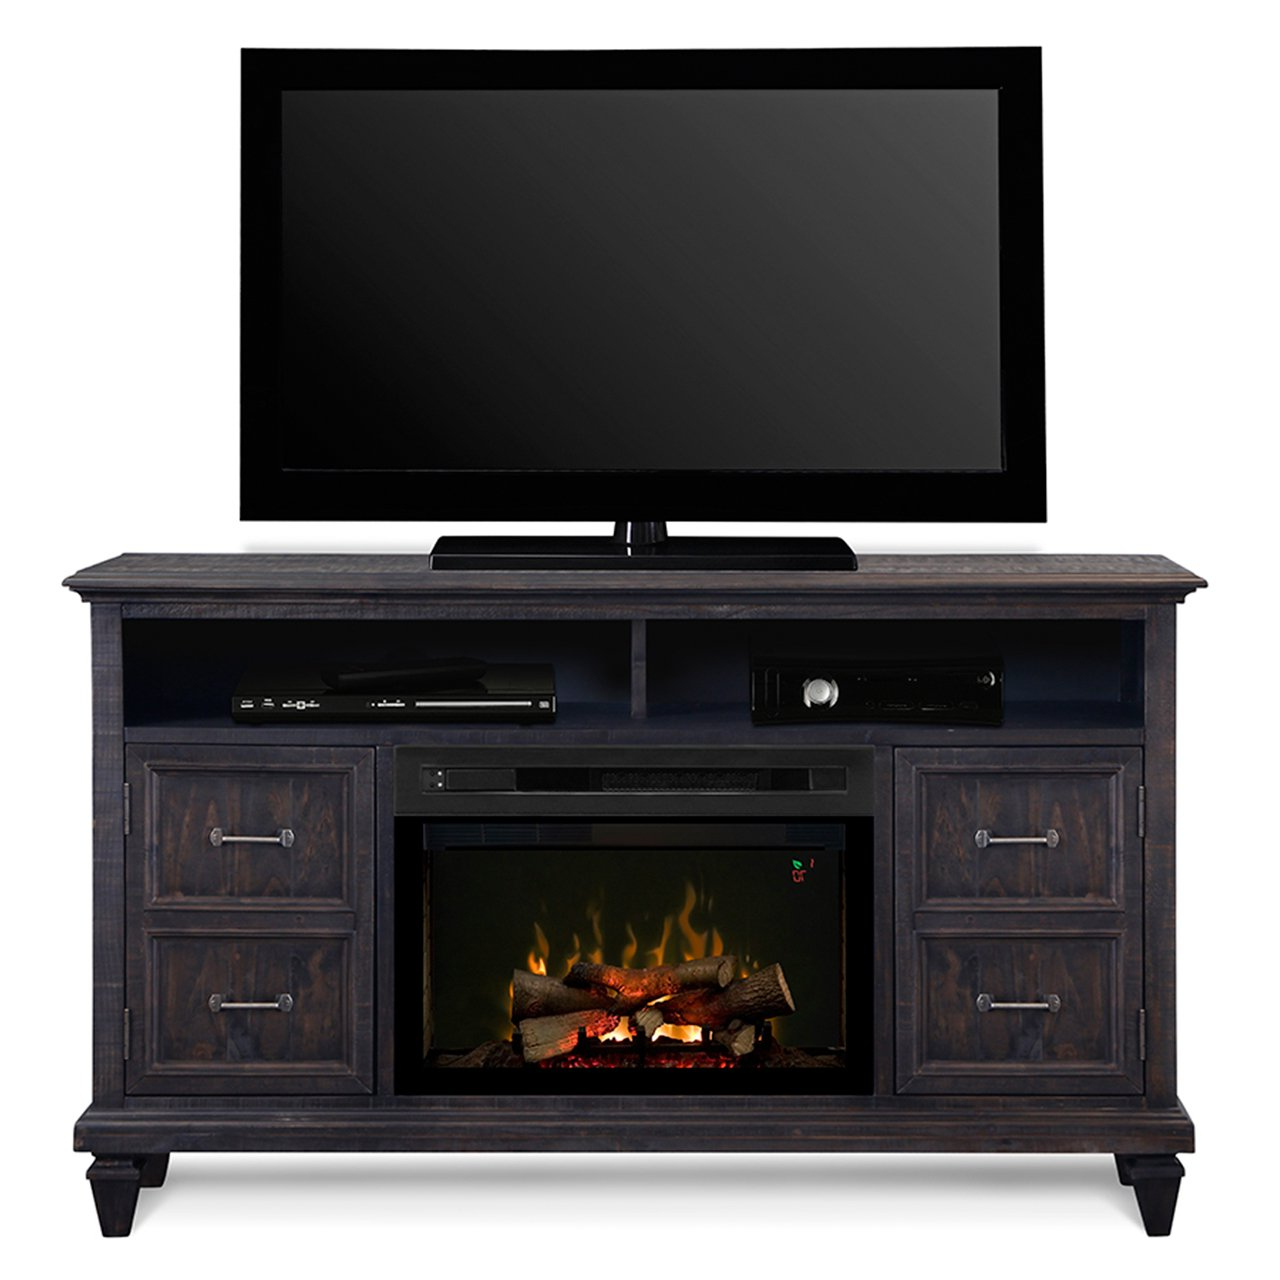 Most Recently Released Fireplace Media Console Tv Stands With Weathered Finish Intended For Dimplex Electric Fireplace Tv Stand Media Console Space (View 3 of 10)